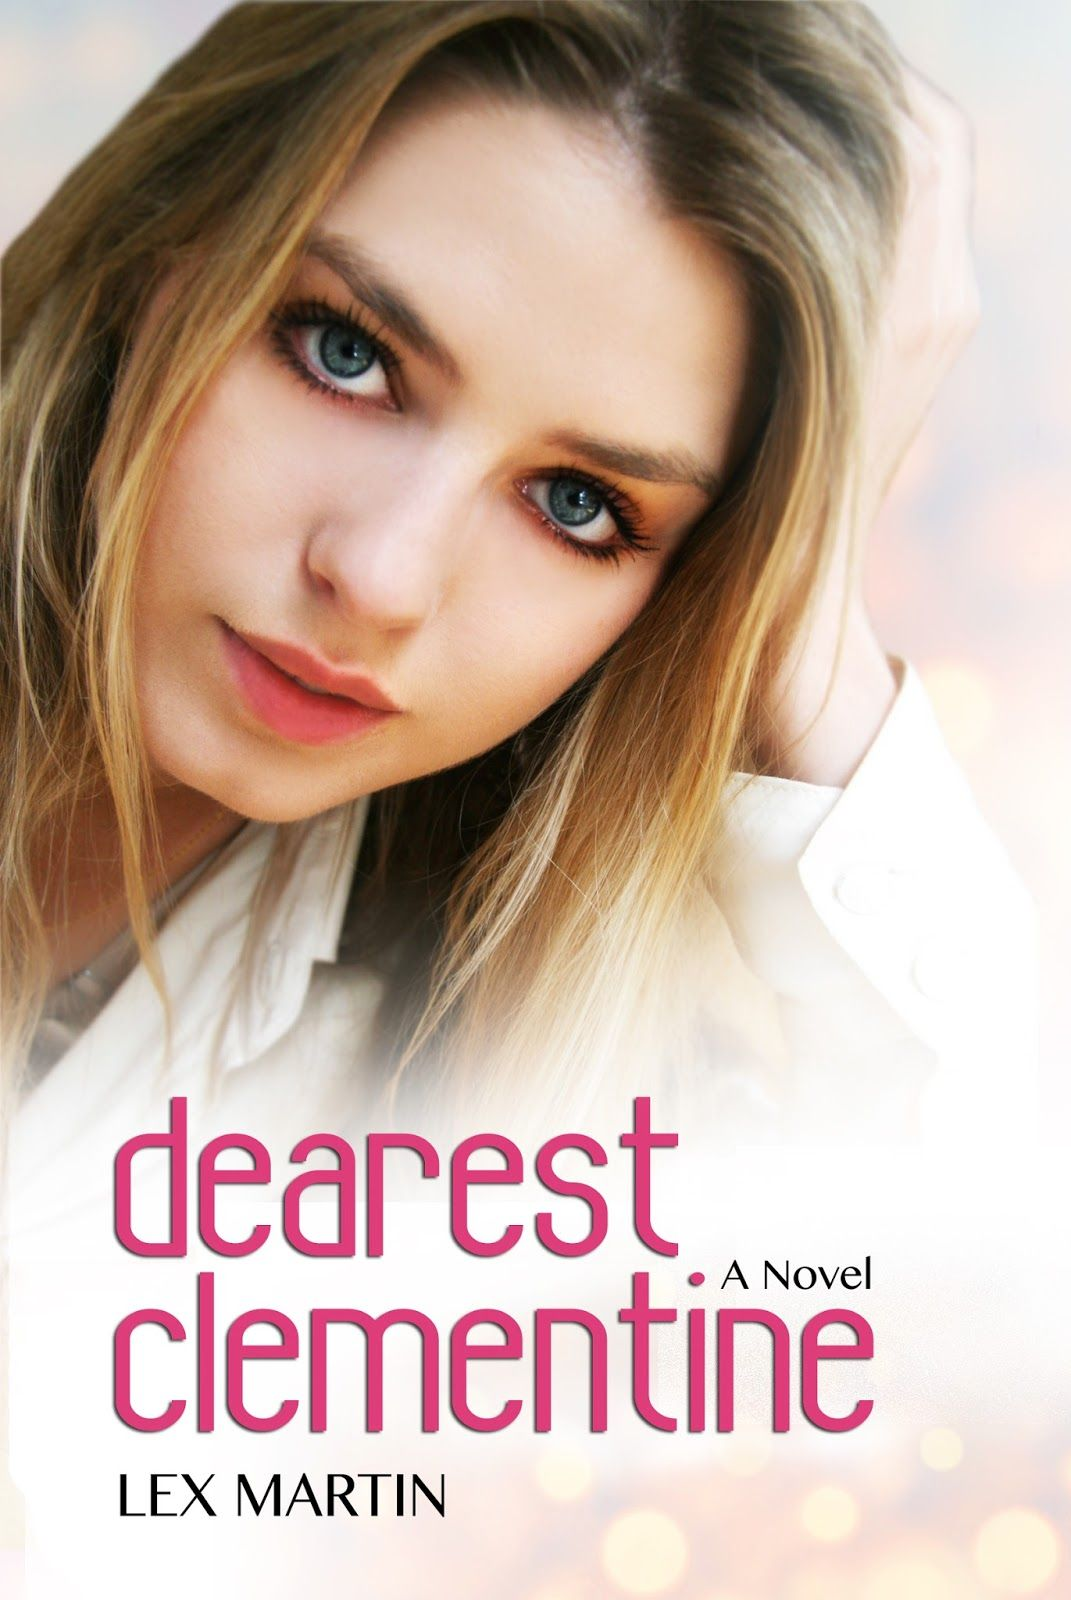 Dearest clementine goodreads giveaways